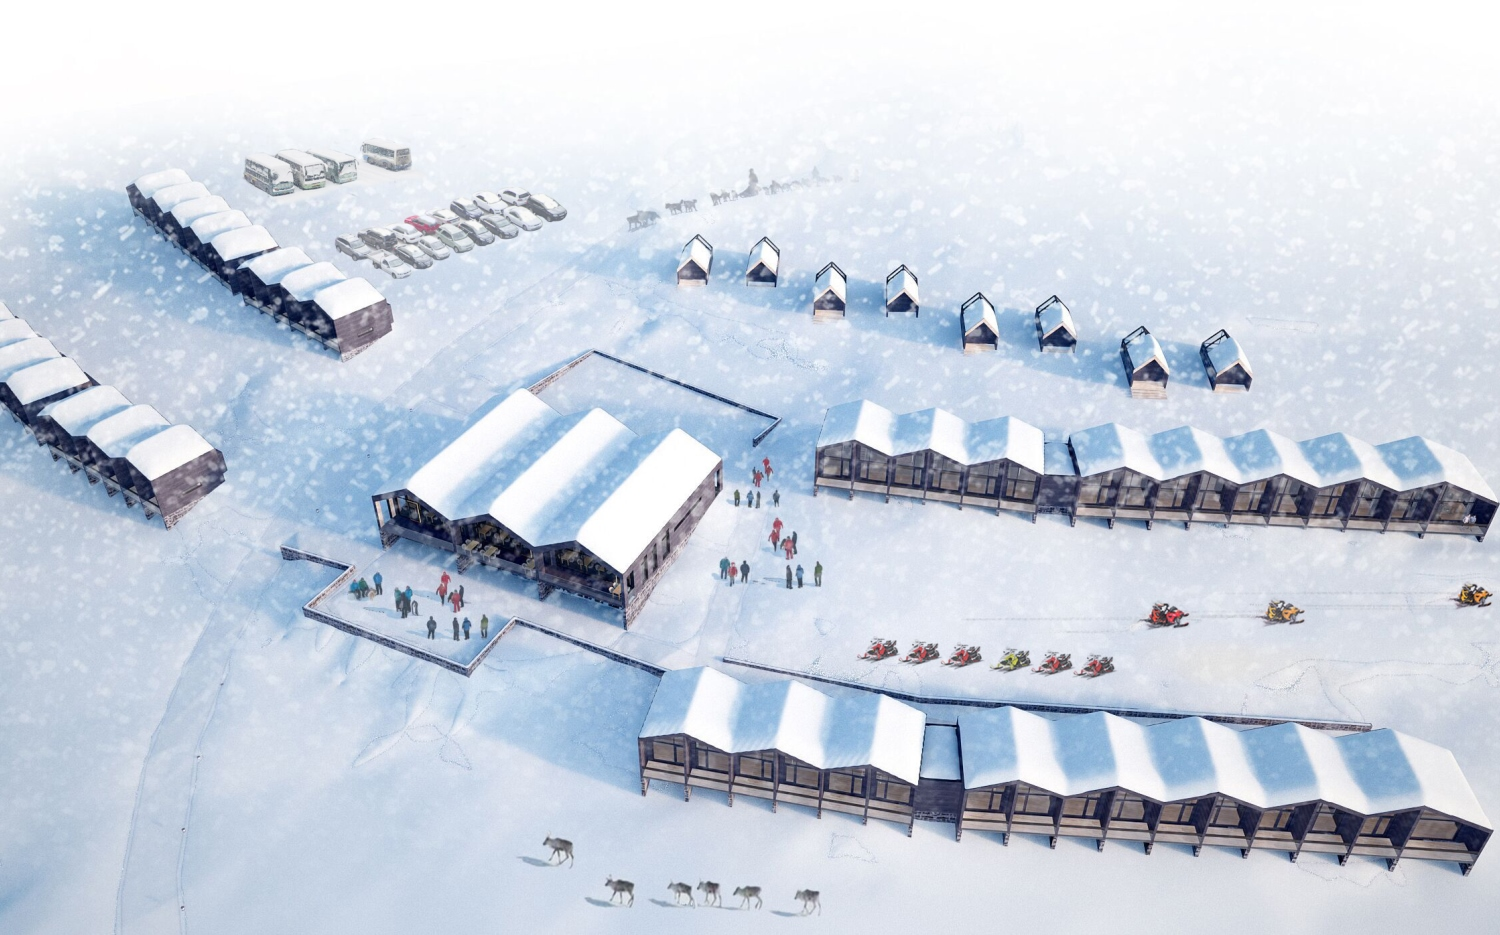 Star Arctic Hotel - Aerial view (artist's impression)